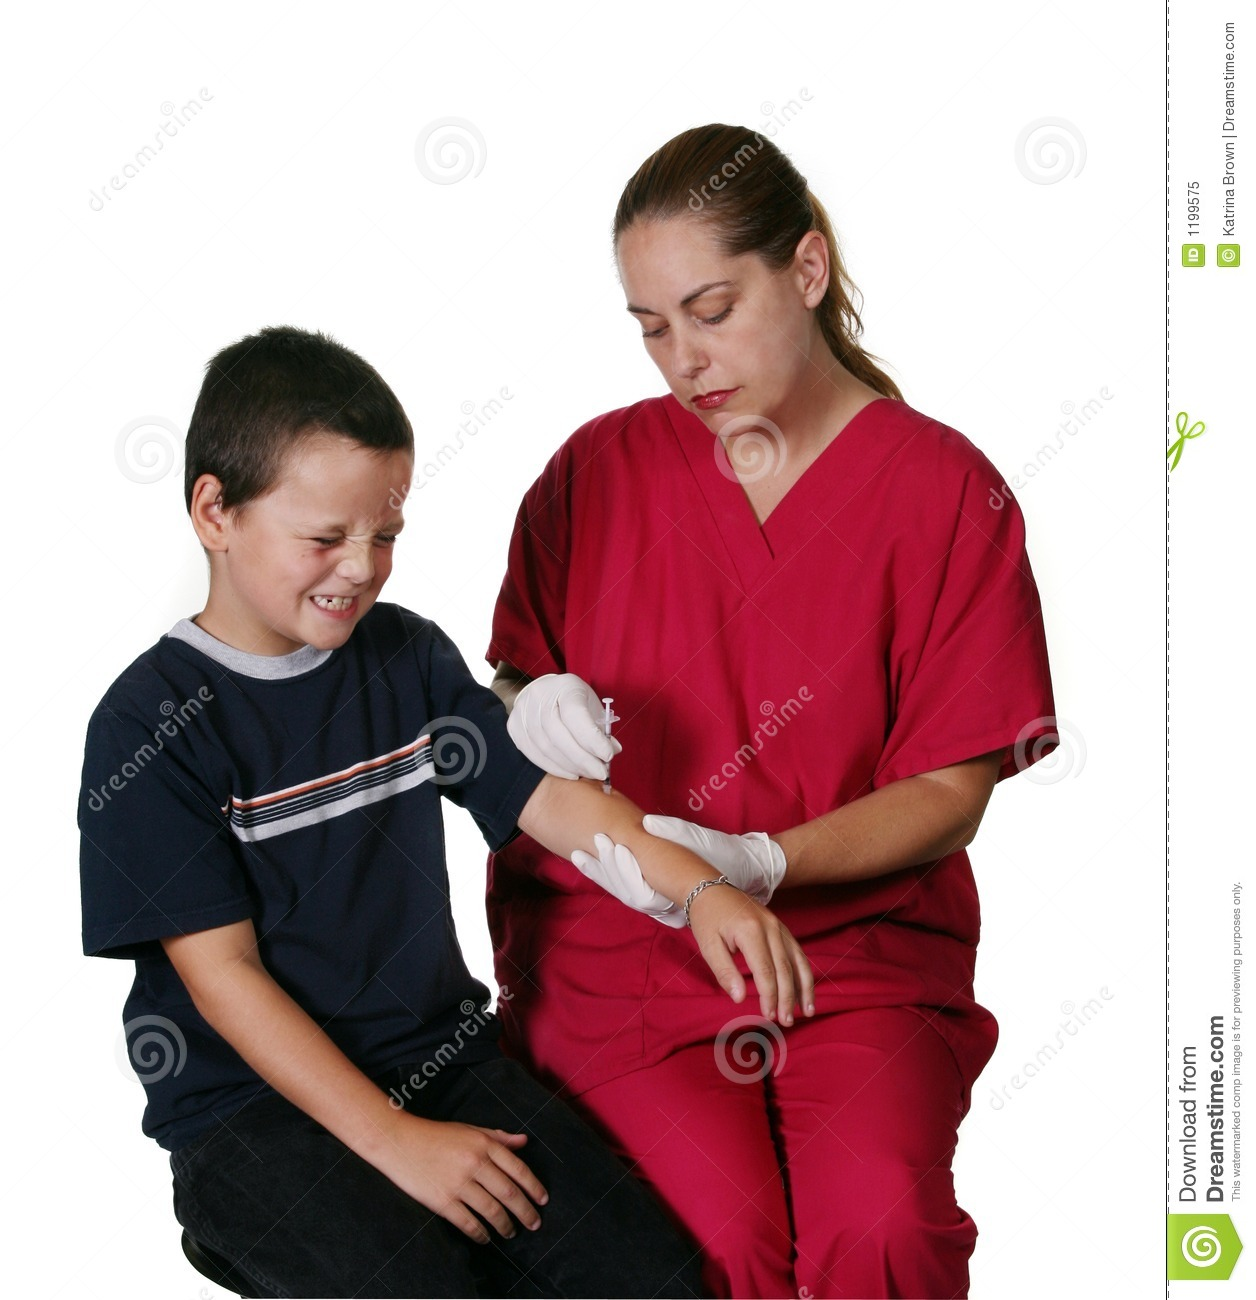 Medical Staff Giving Injection